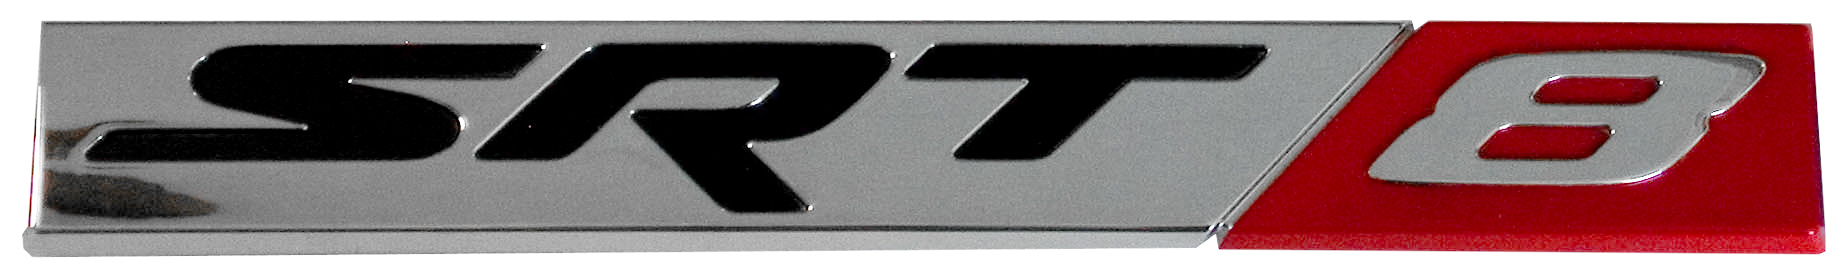 Srt8 Badge Decal For Jeep Grand Cherokee Wk Item